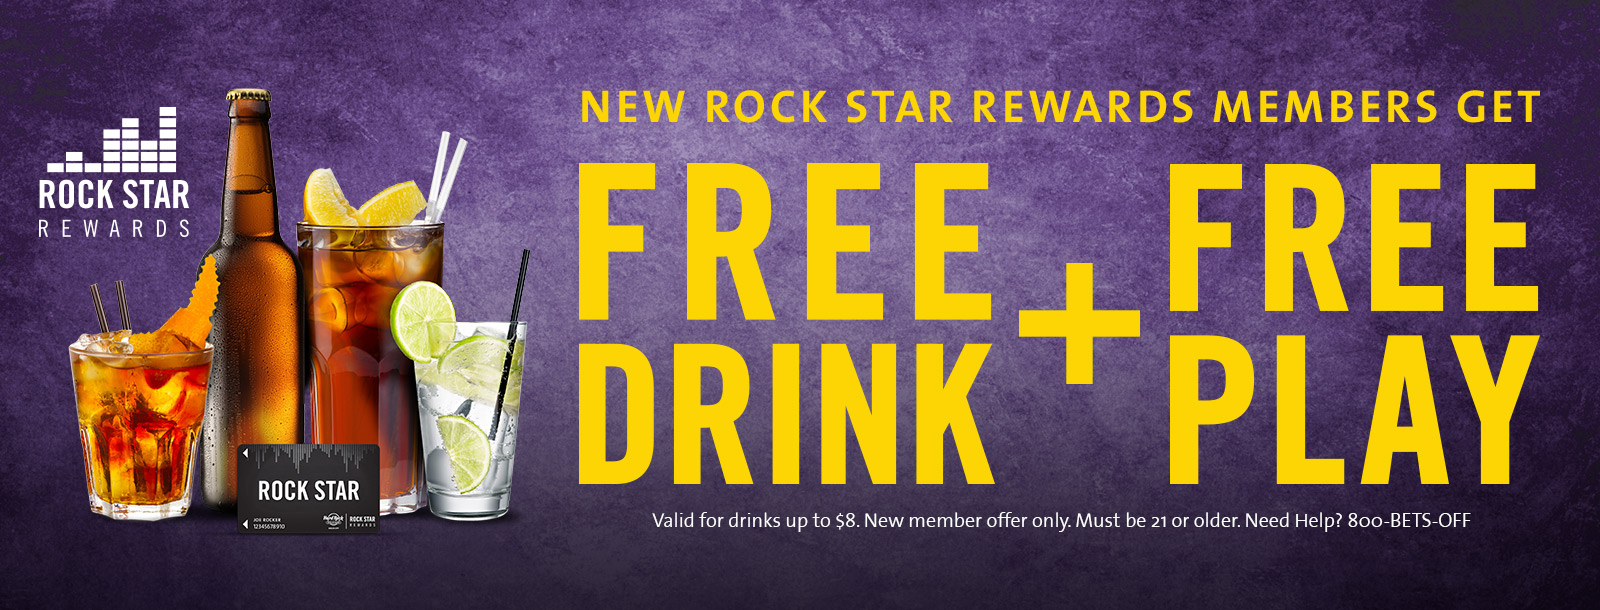 rock star rewards new members